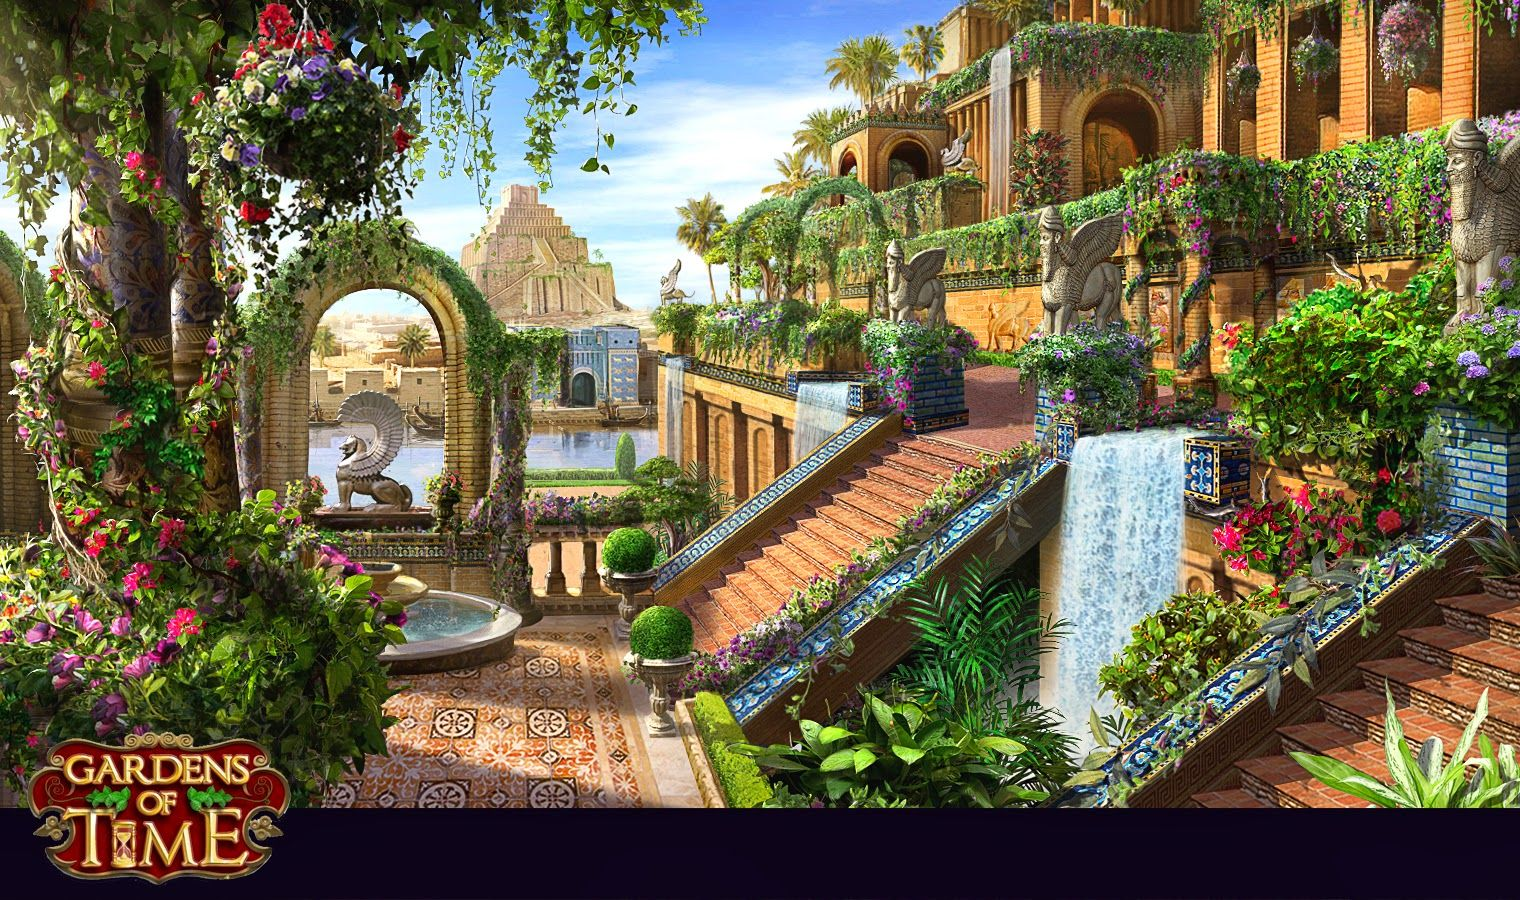 7ff002f724ff73e3025860ff09f5a458 - What Plants Were In The Hanging Gardens Of Babylon